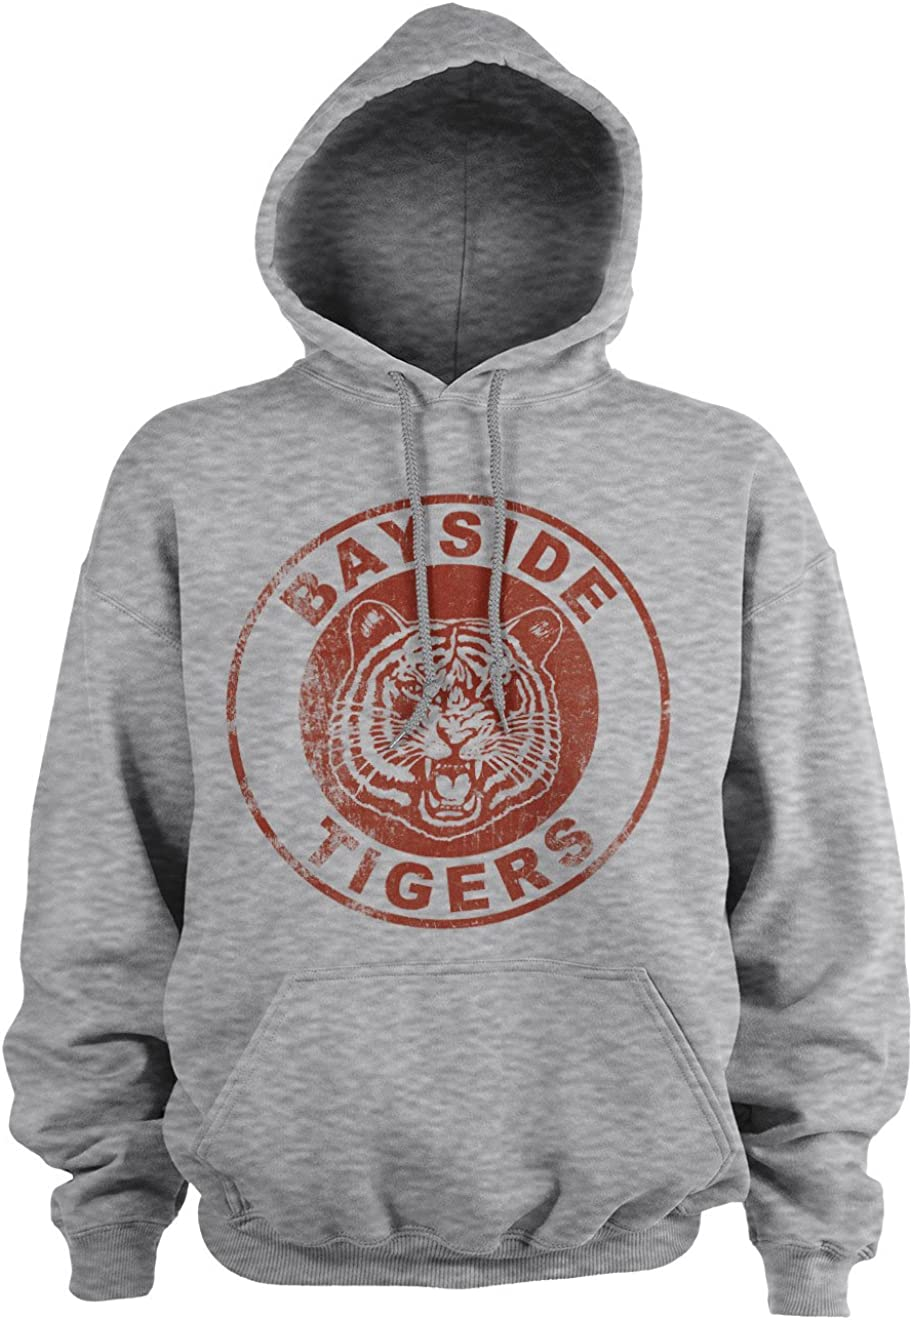 Officially Licensed Bayside Tigers Washed Logo Hoodie